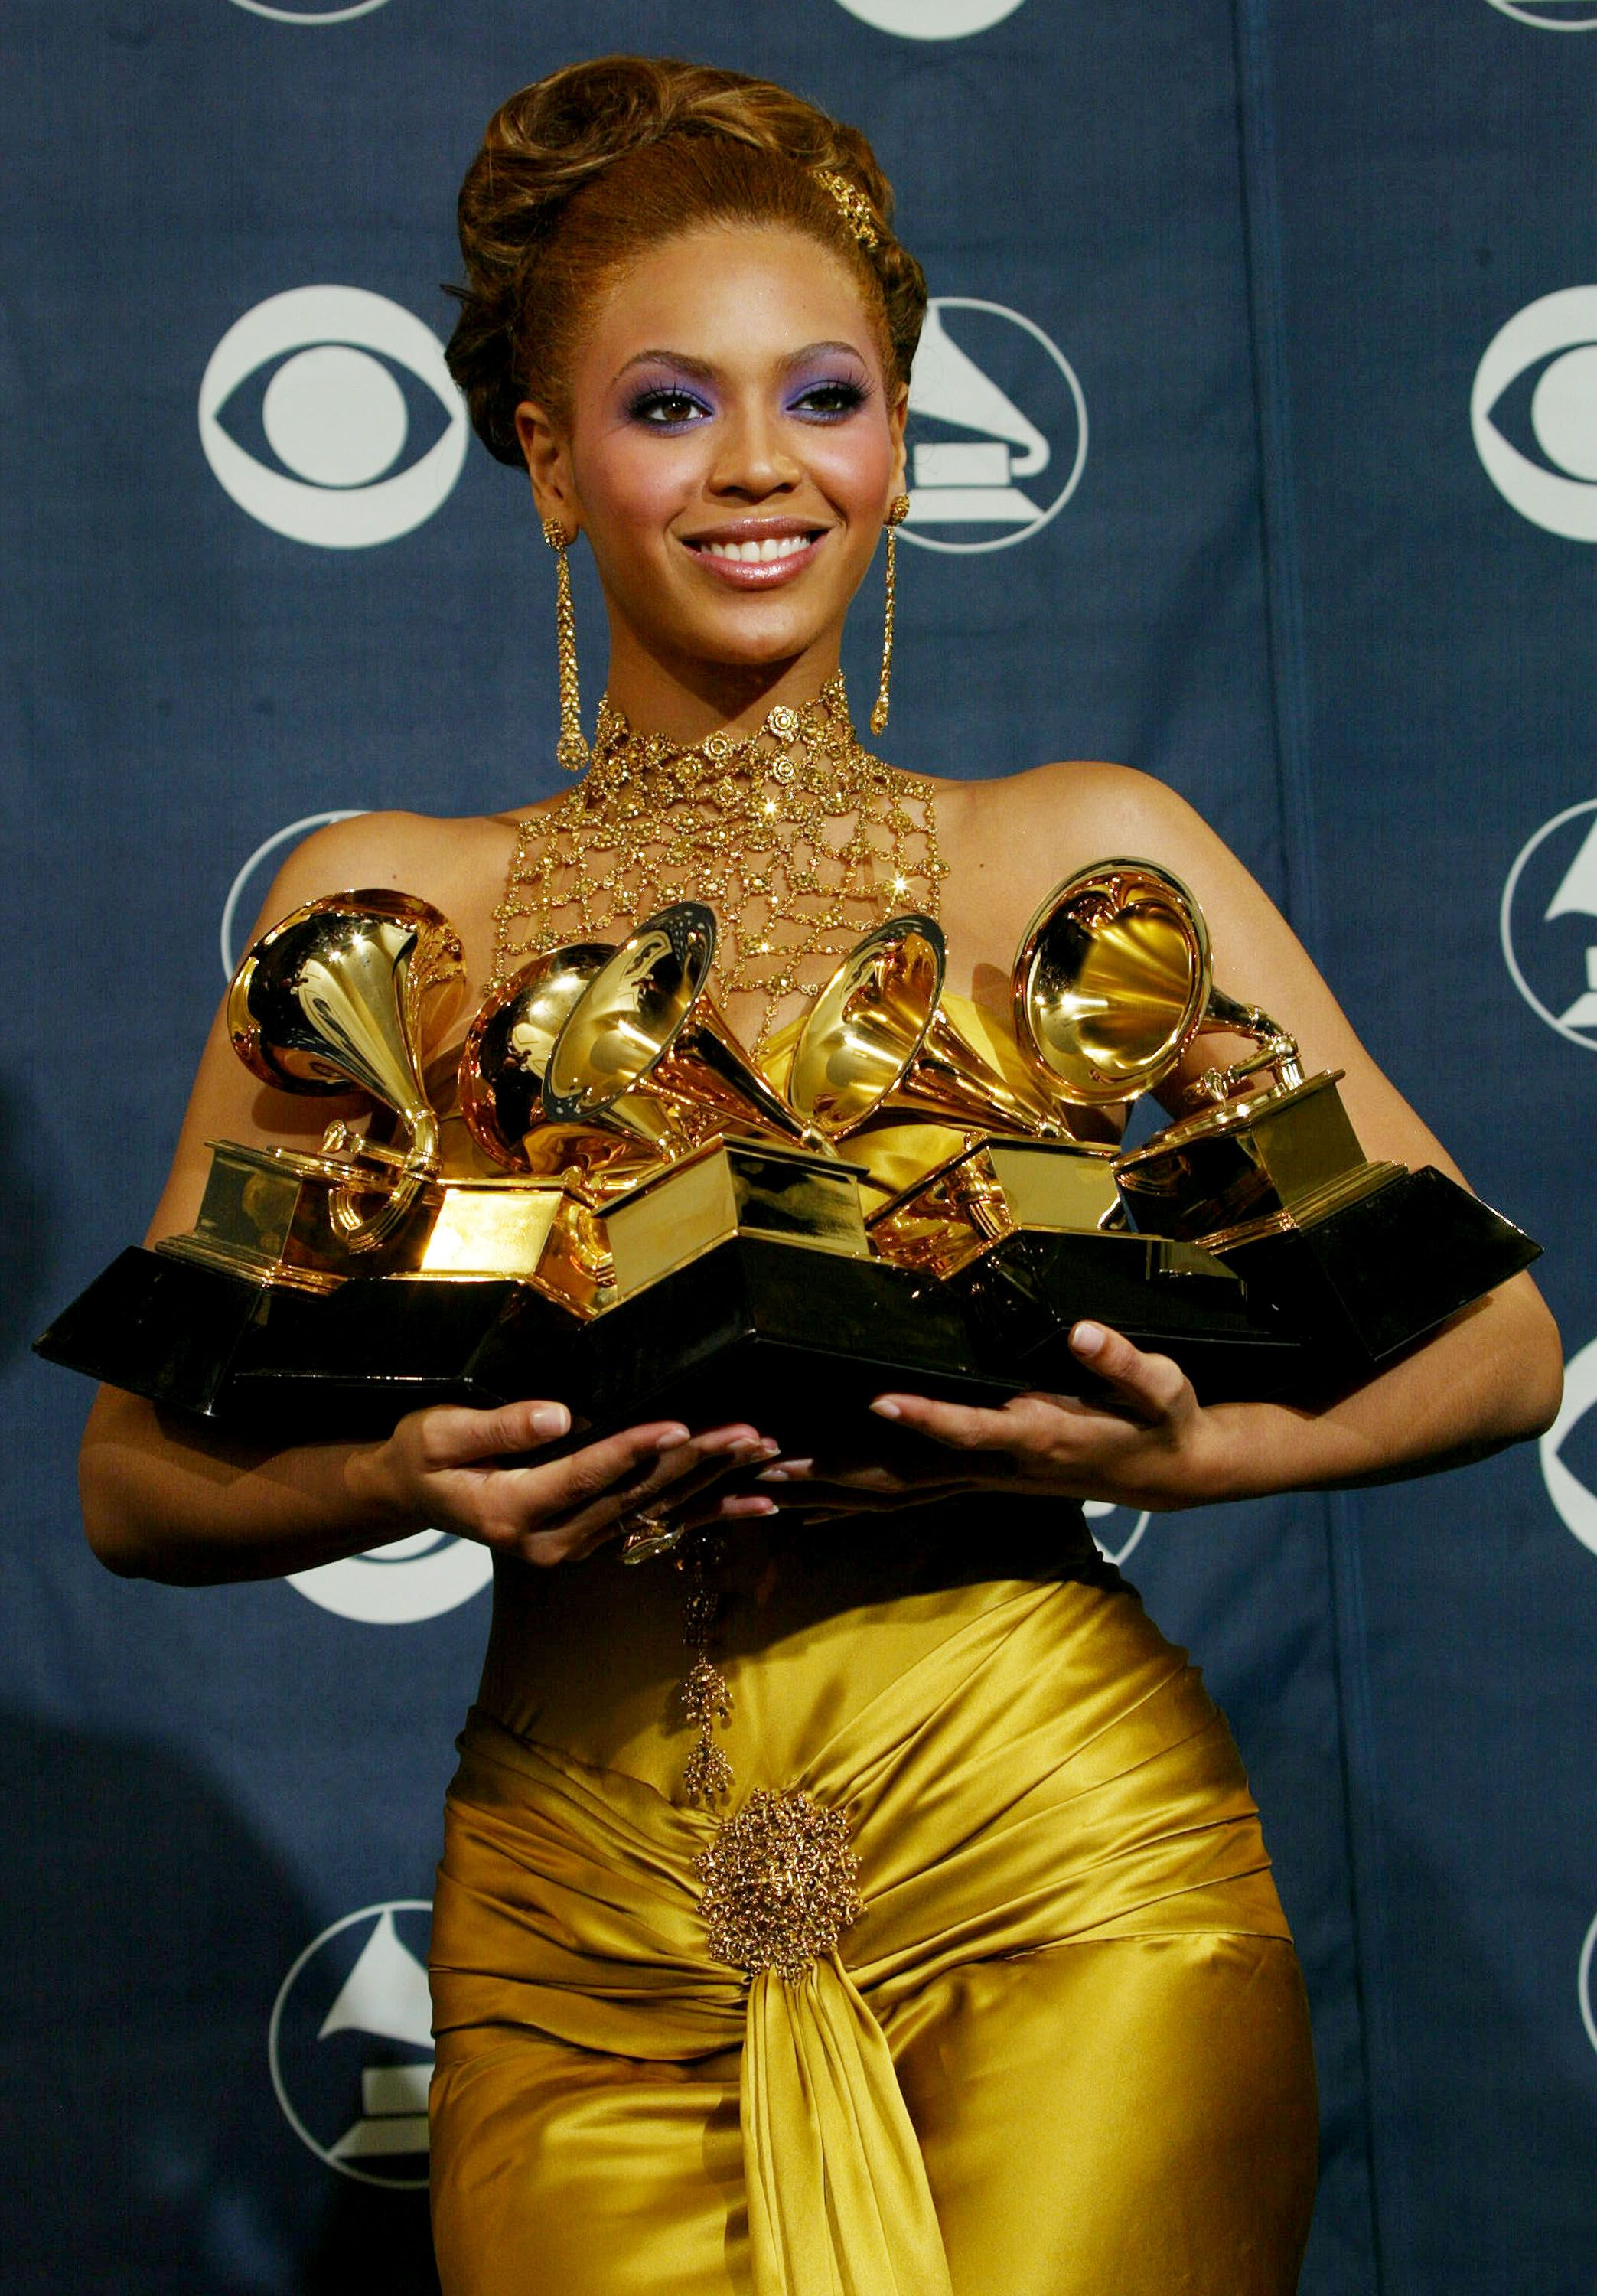 Beyonce Knowles wins 5 Grammy Awards in 2004 Beyonce